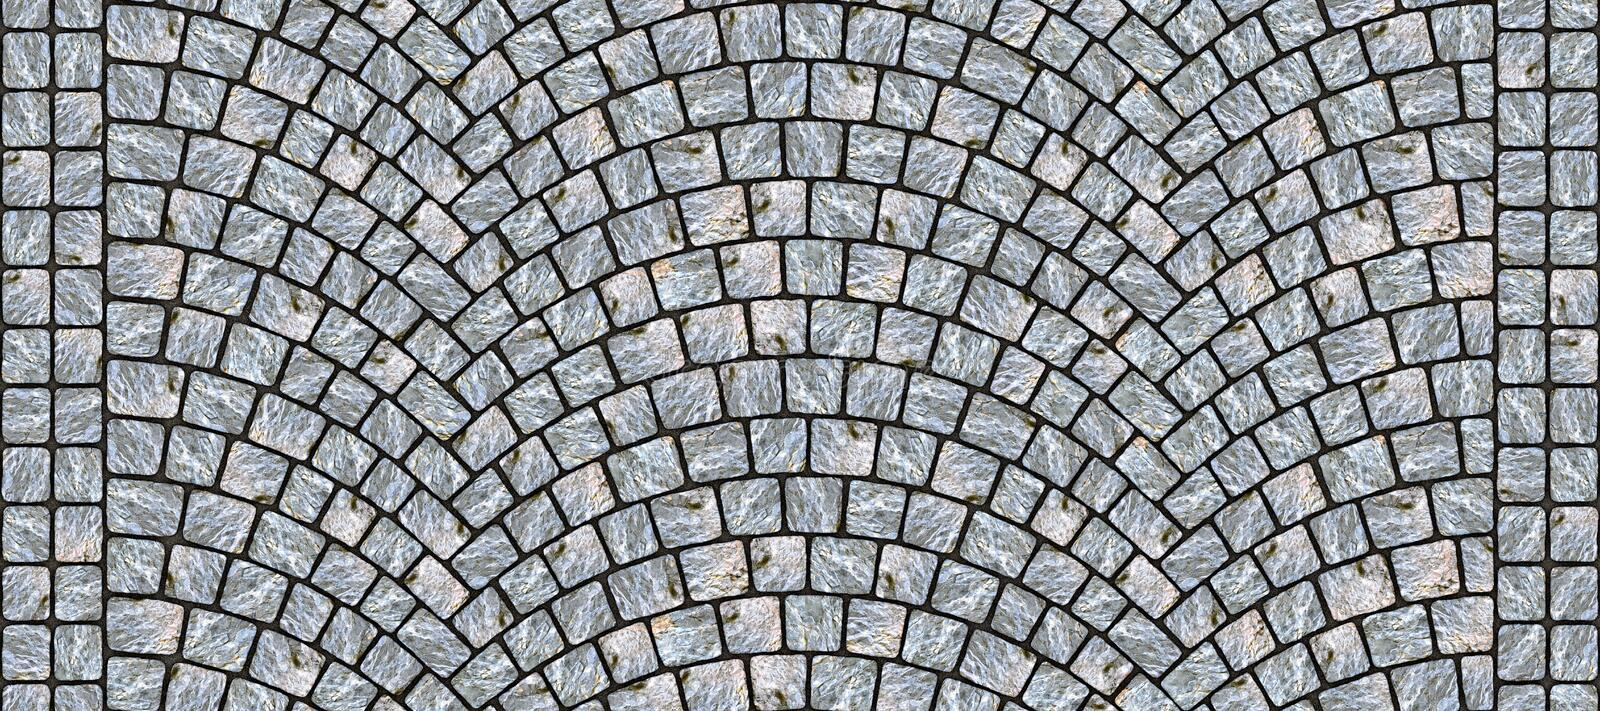 Road curved cobblestone texture 118. Cobblestone arched pavement road with edge courses at the sidewalk. Seamless tileable repeating 3D rendering texture stock illustration